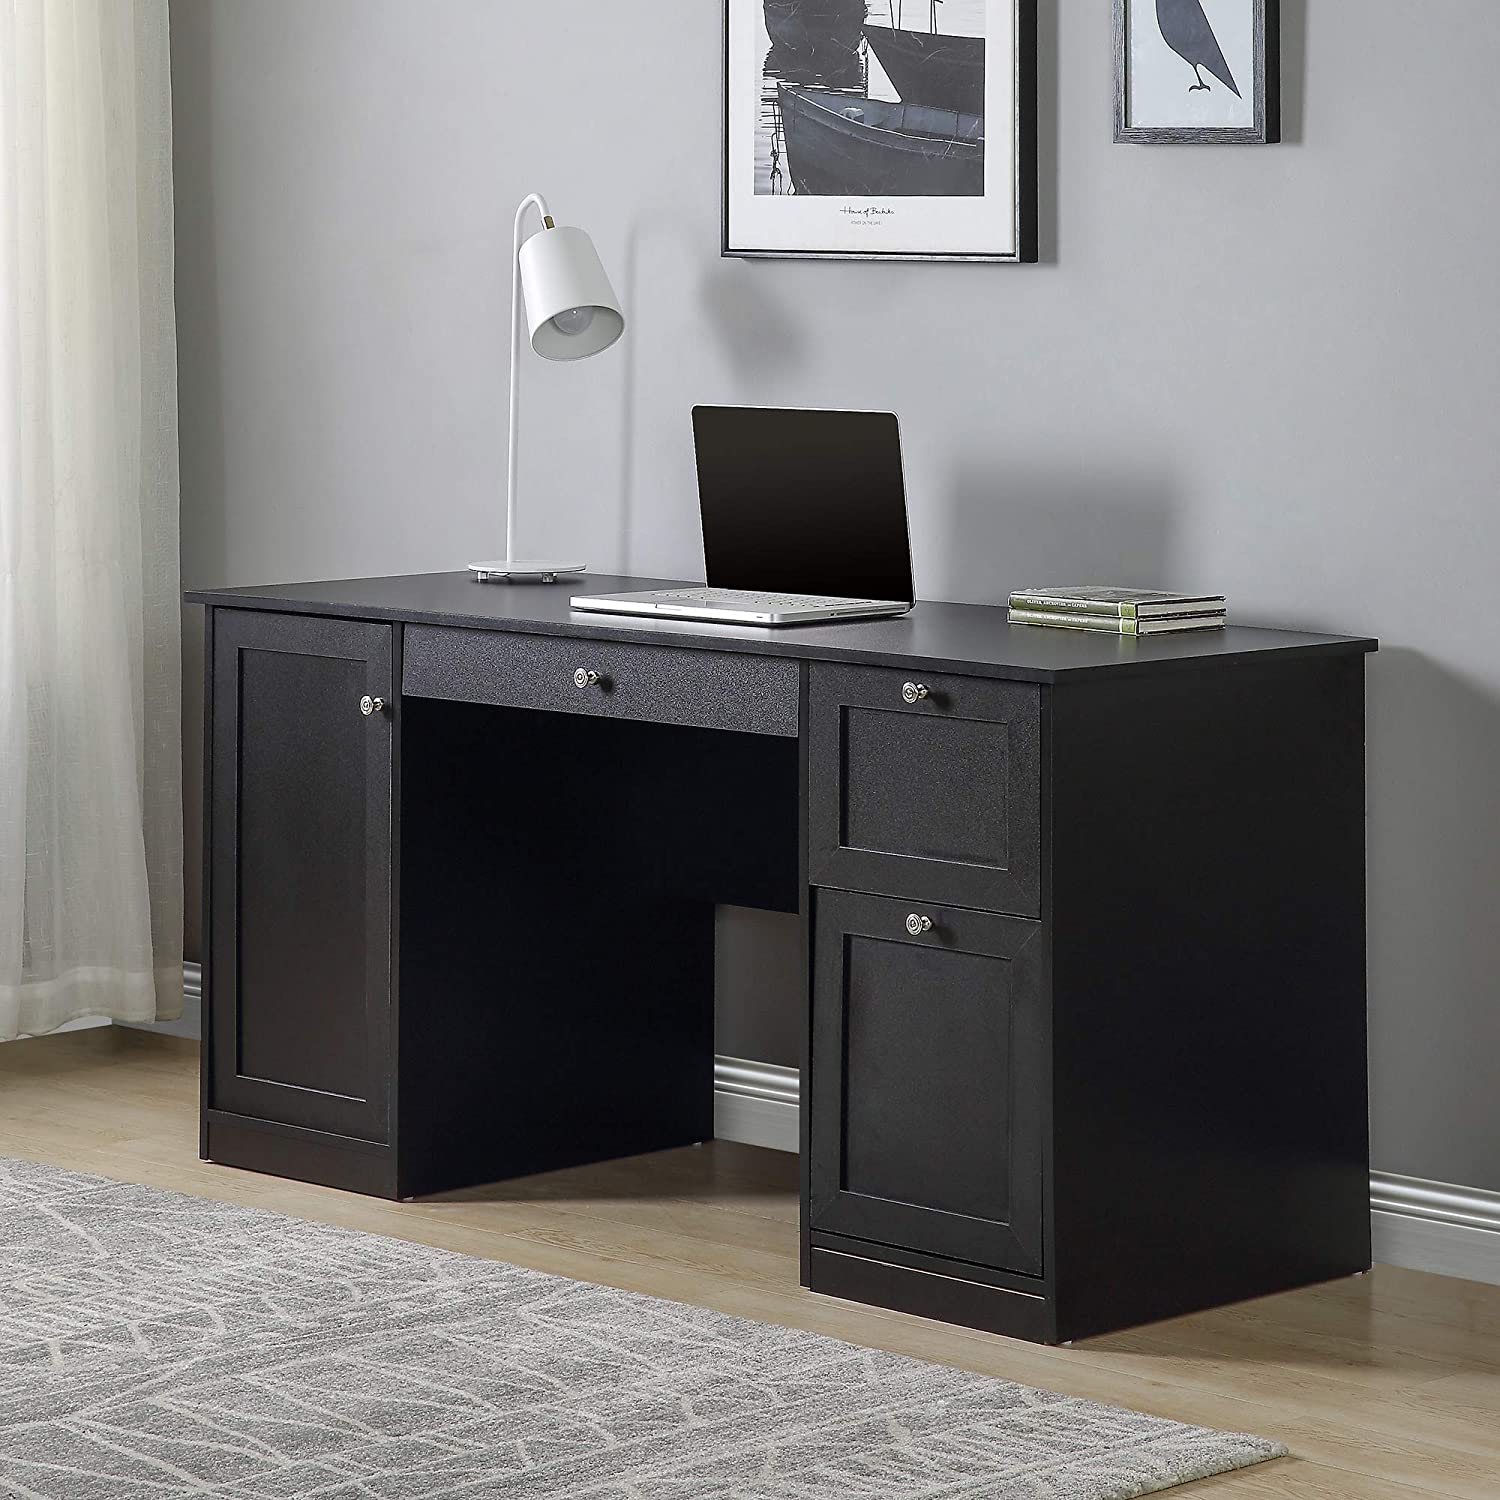 Home Office Computer Desk Sturdy Black Writing Desk Modern Simple Study Table with 2 Drawers, Pullout Keyboard, Storage Cabinet for Home, Office, Study Room, Bedroom